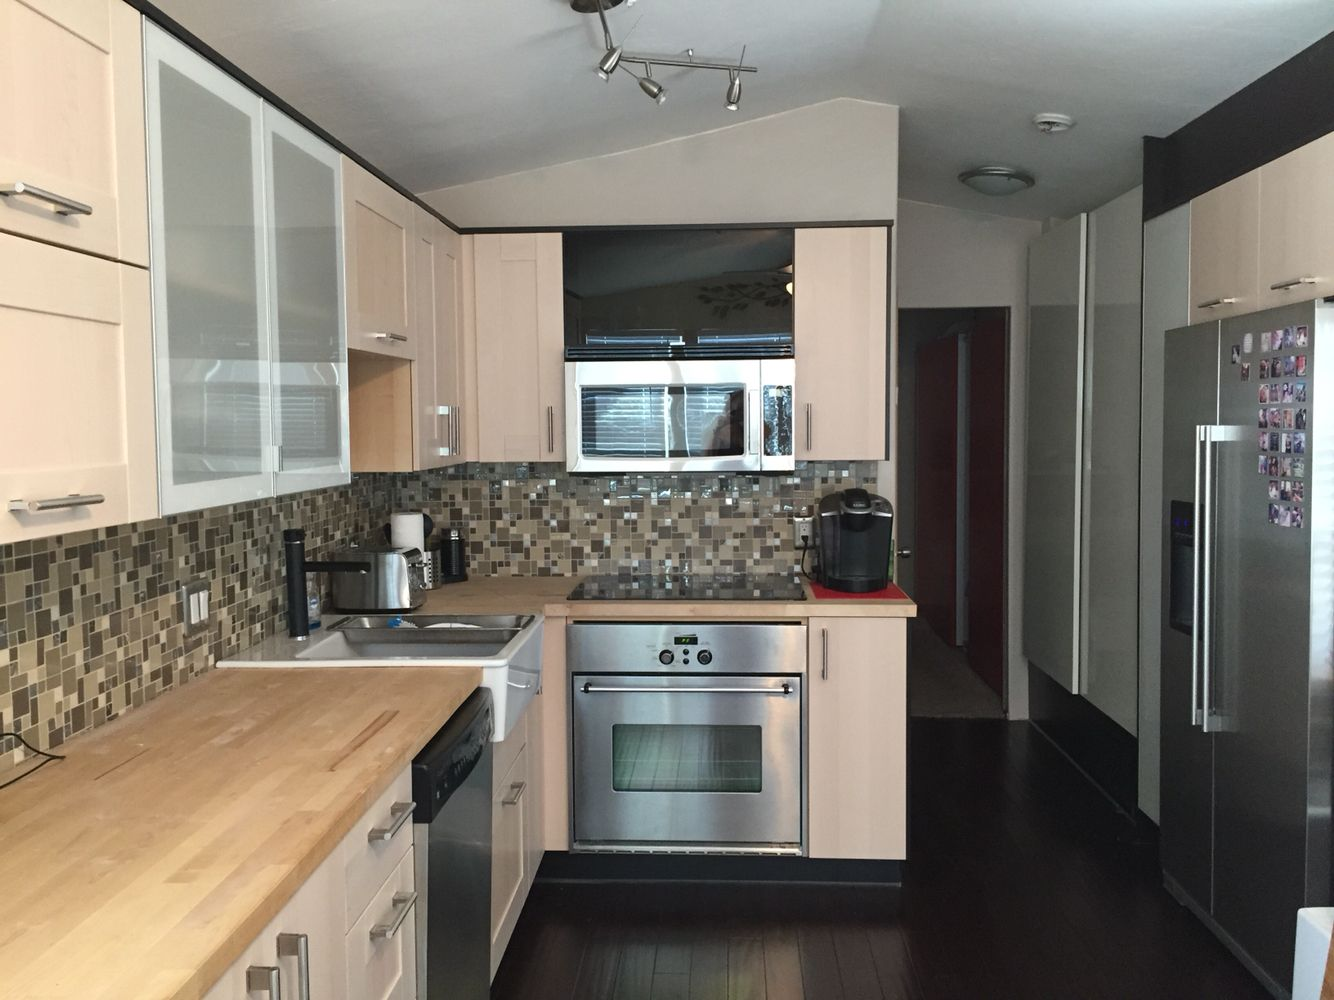 Ikea Kitchen In Our Remodeled Park Model Tiny House Ikea